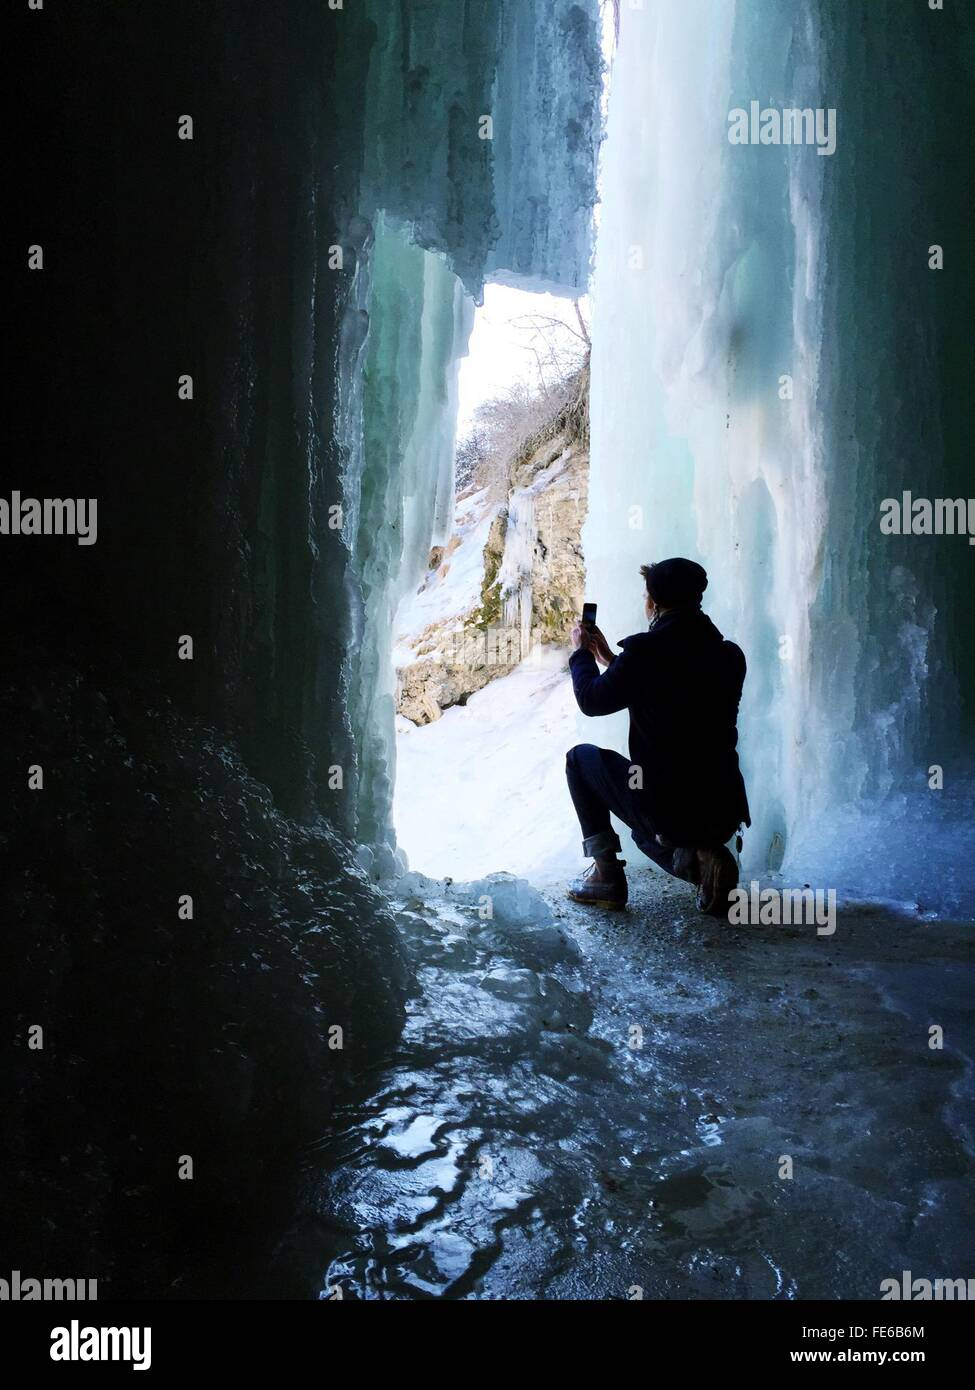 Rear View Of Man Photographing Frozen Waterfall - Stock Image